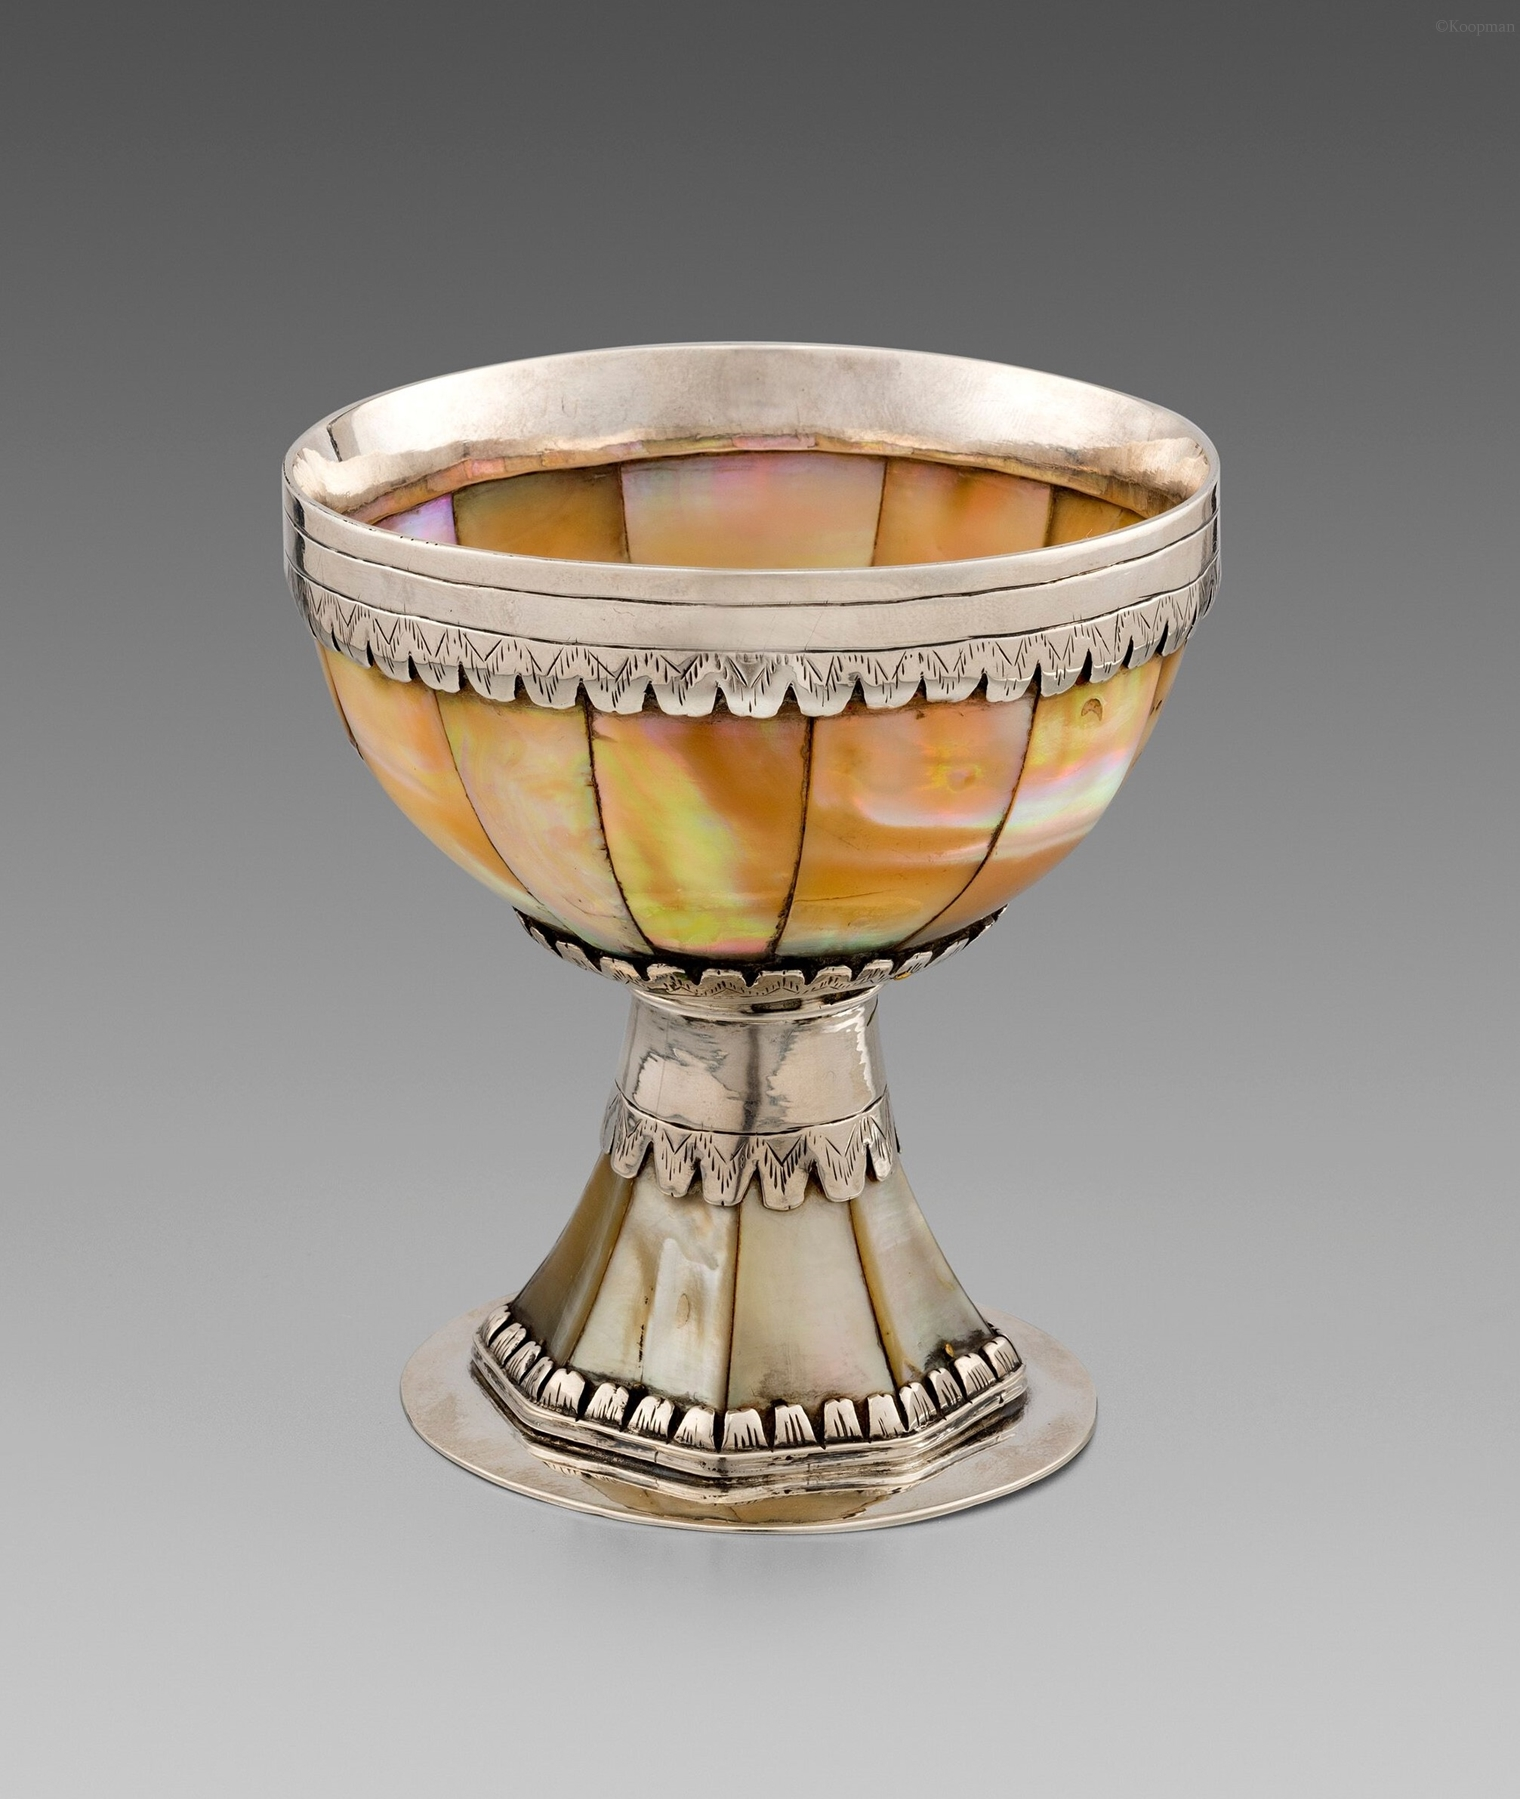 An Extremely Rare 17th Century English Goblet